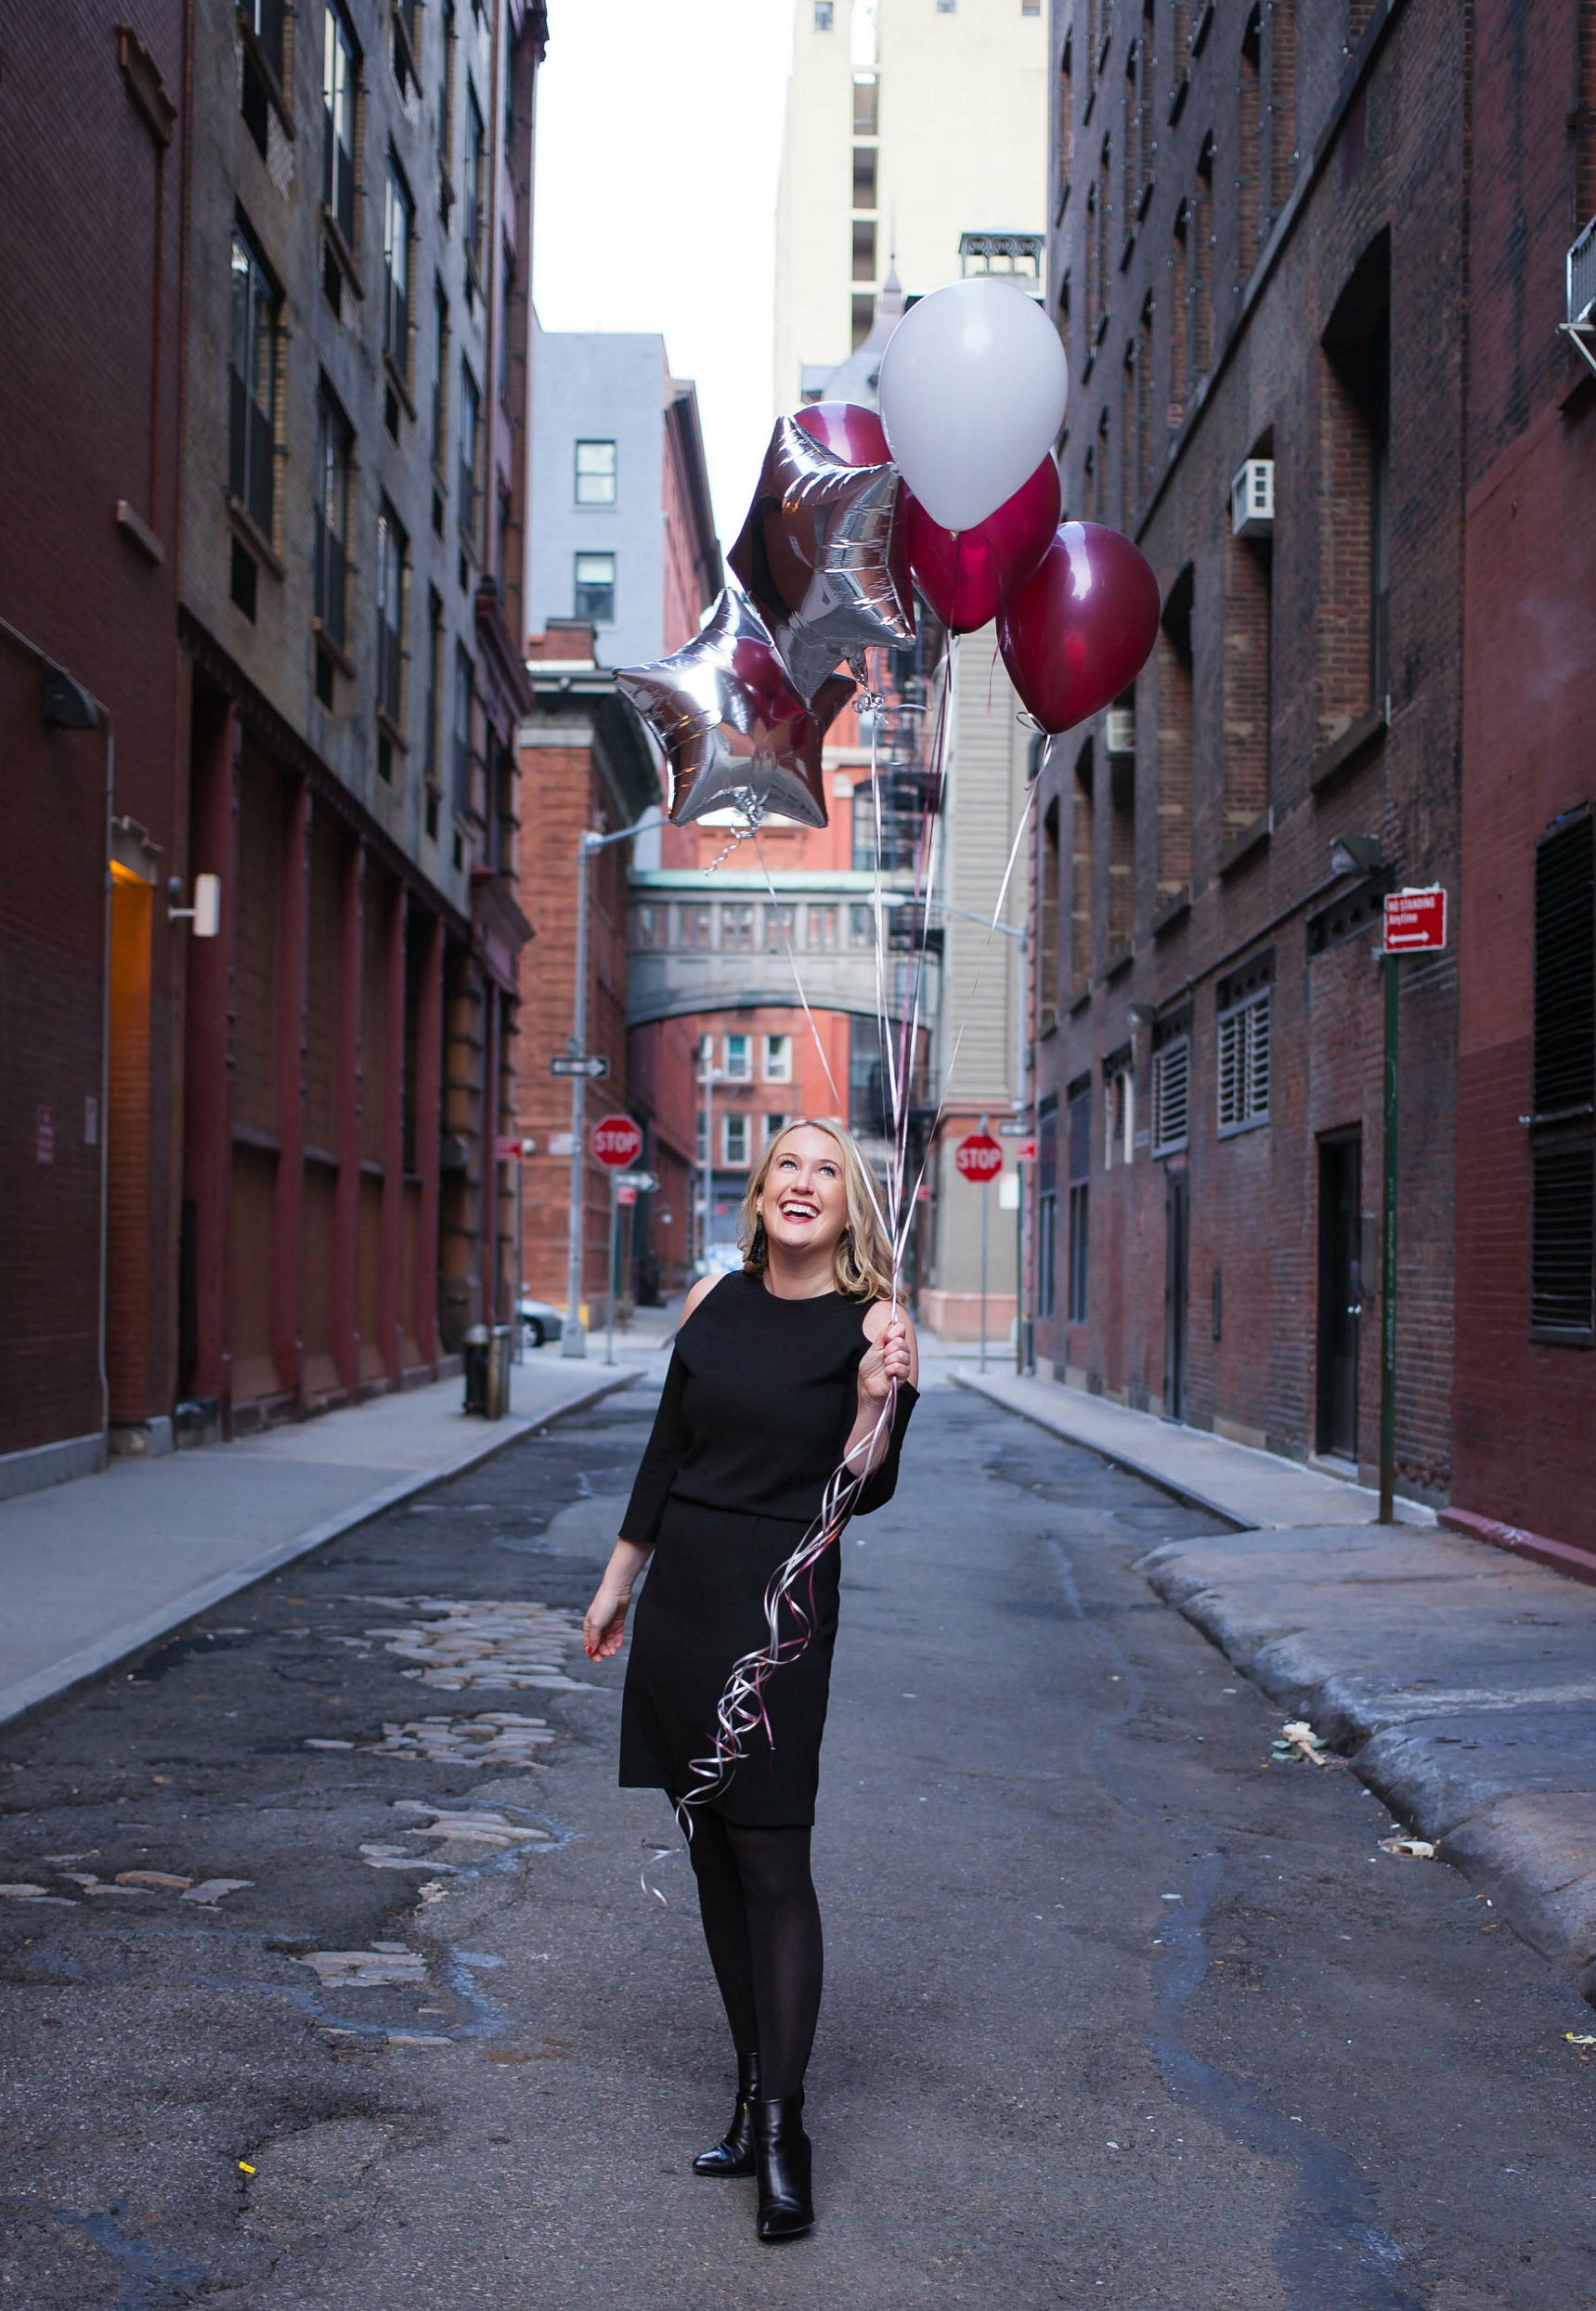 Blogging Lessons Learned in 10 Years - Meghan Donovan of wit & whimsy